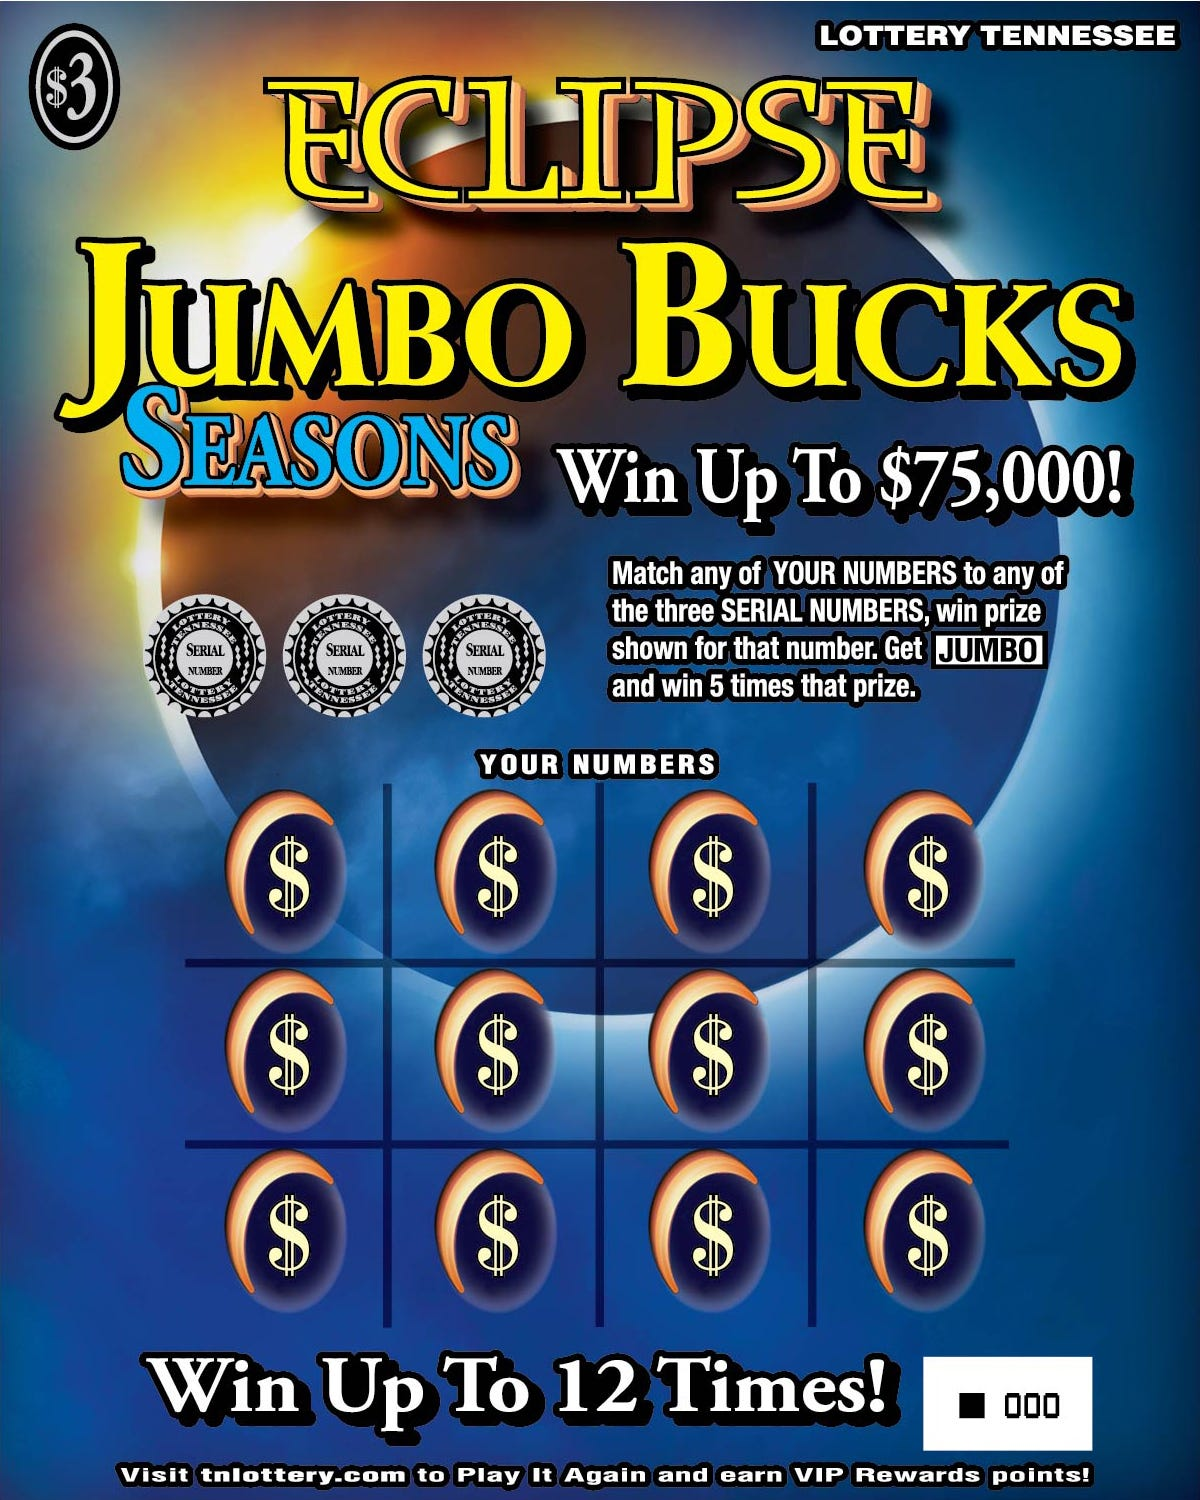 Tn lottery jumbo bucks prizes for adults